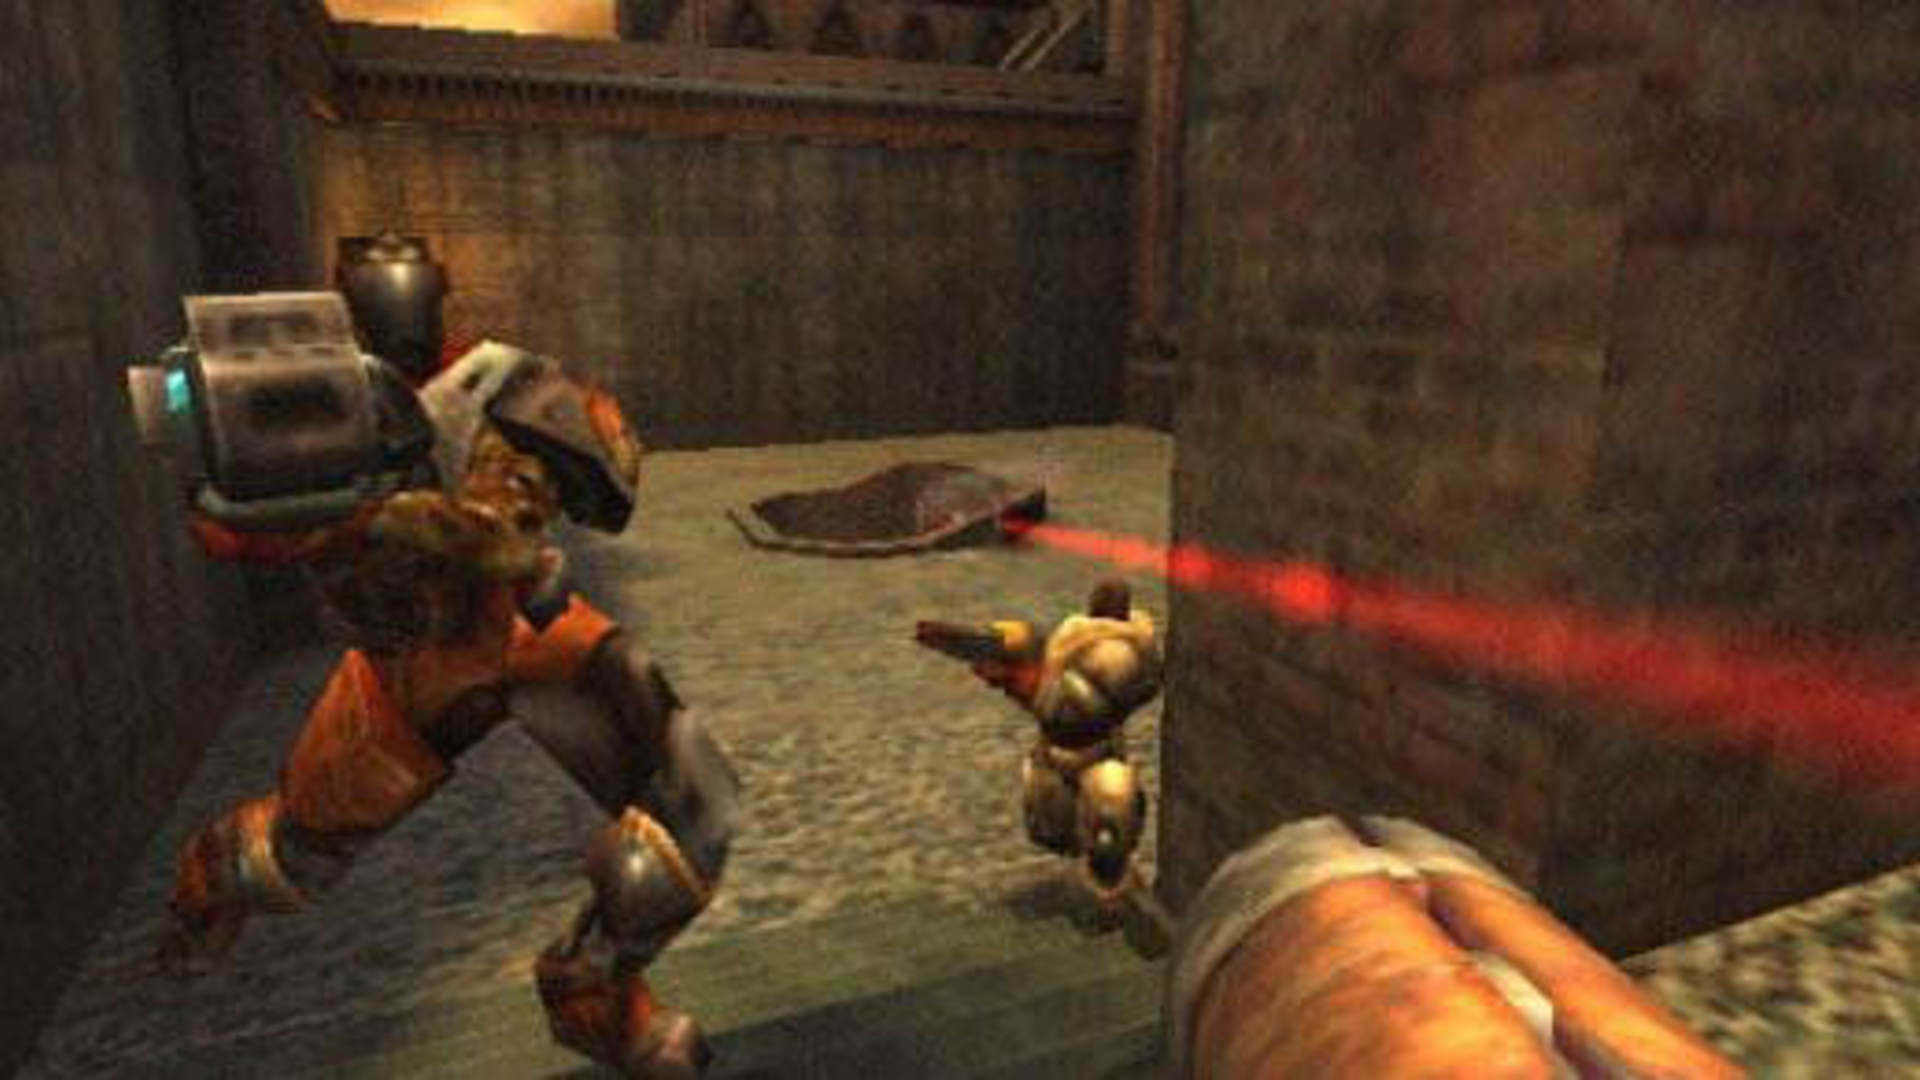 Grab Quake 3 for free, courtesy of Bethesda and generous QuakeCon donors